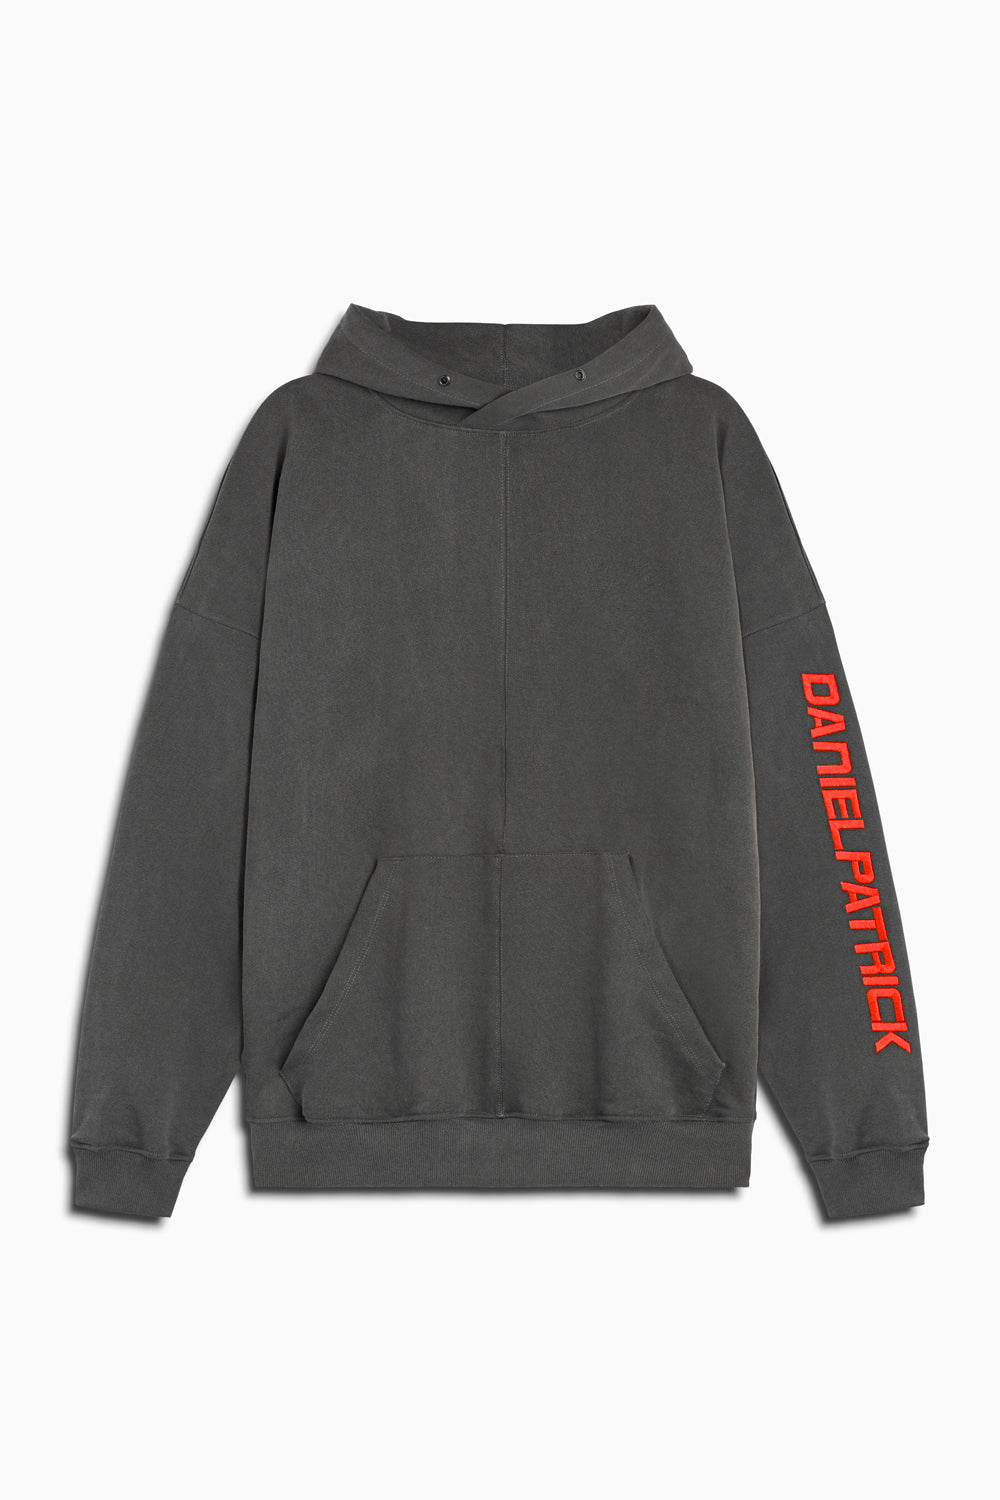 2019 DP hoodie in vintage black/red by daniel patrick